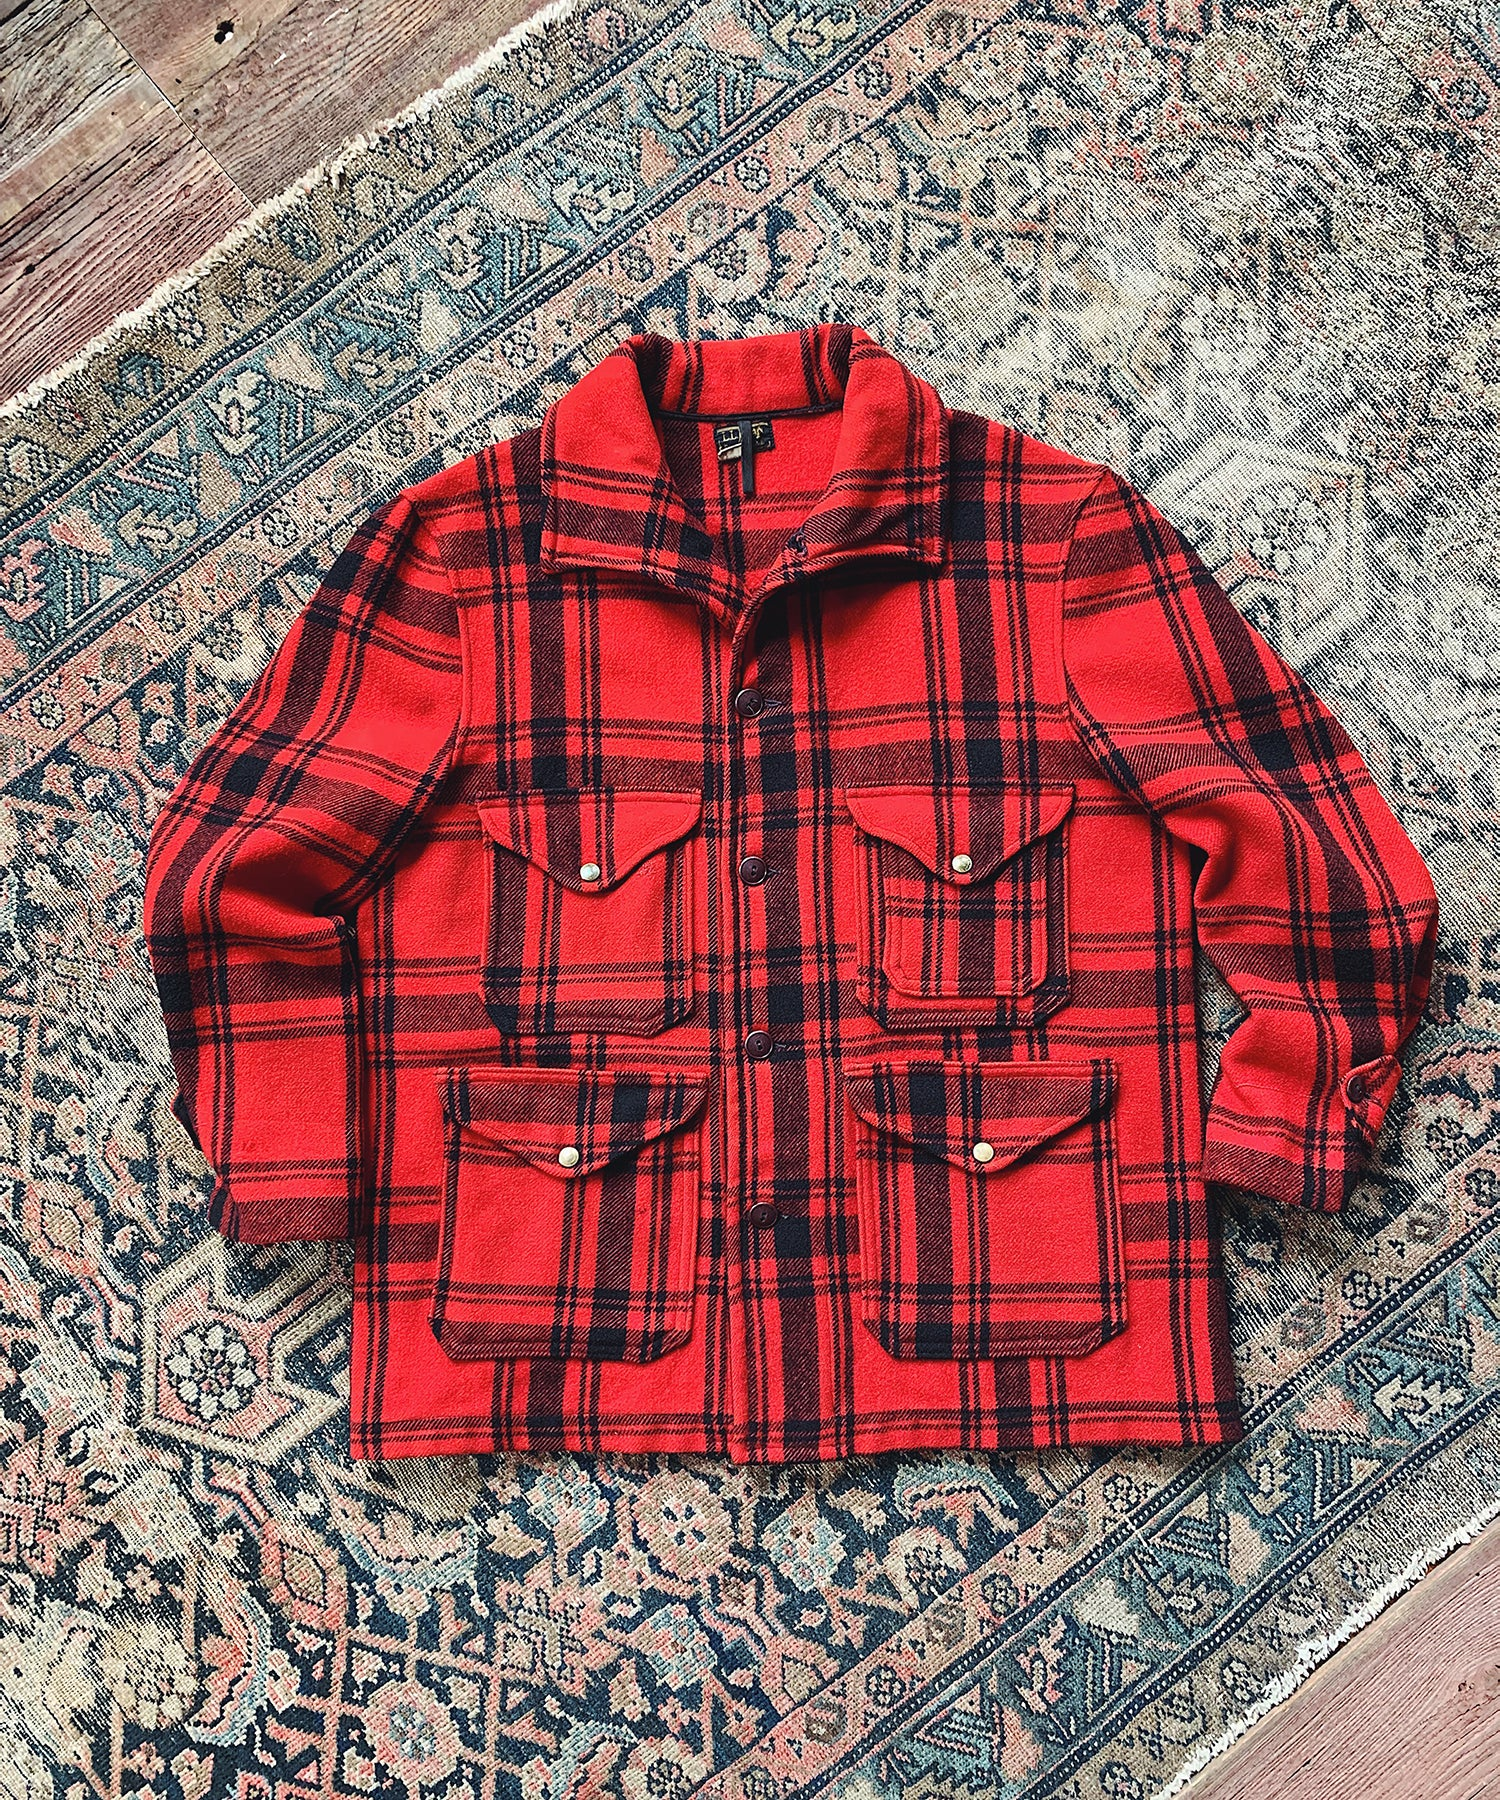 Item #14 - Todd Snyder x Wooden Sleepers 1920's Mackinaw Cruiser Jacket in Red Plaid